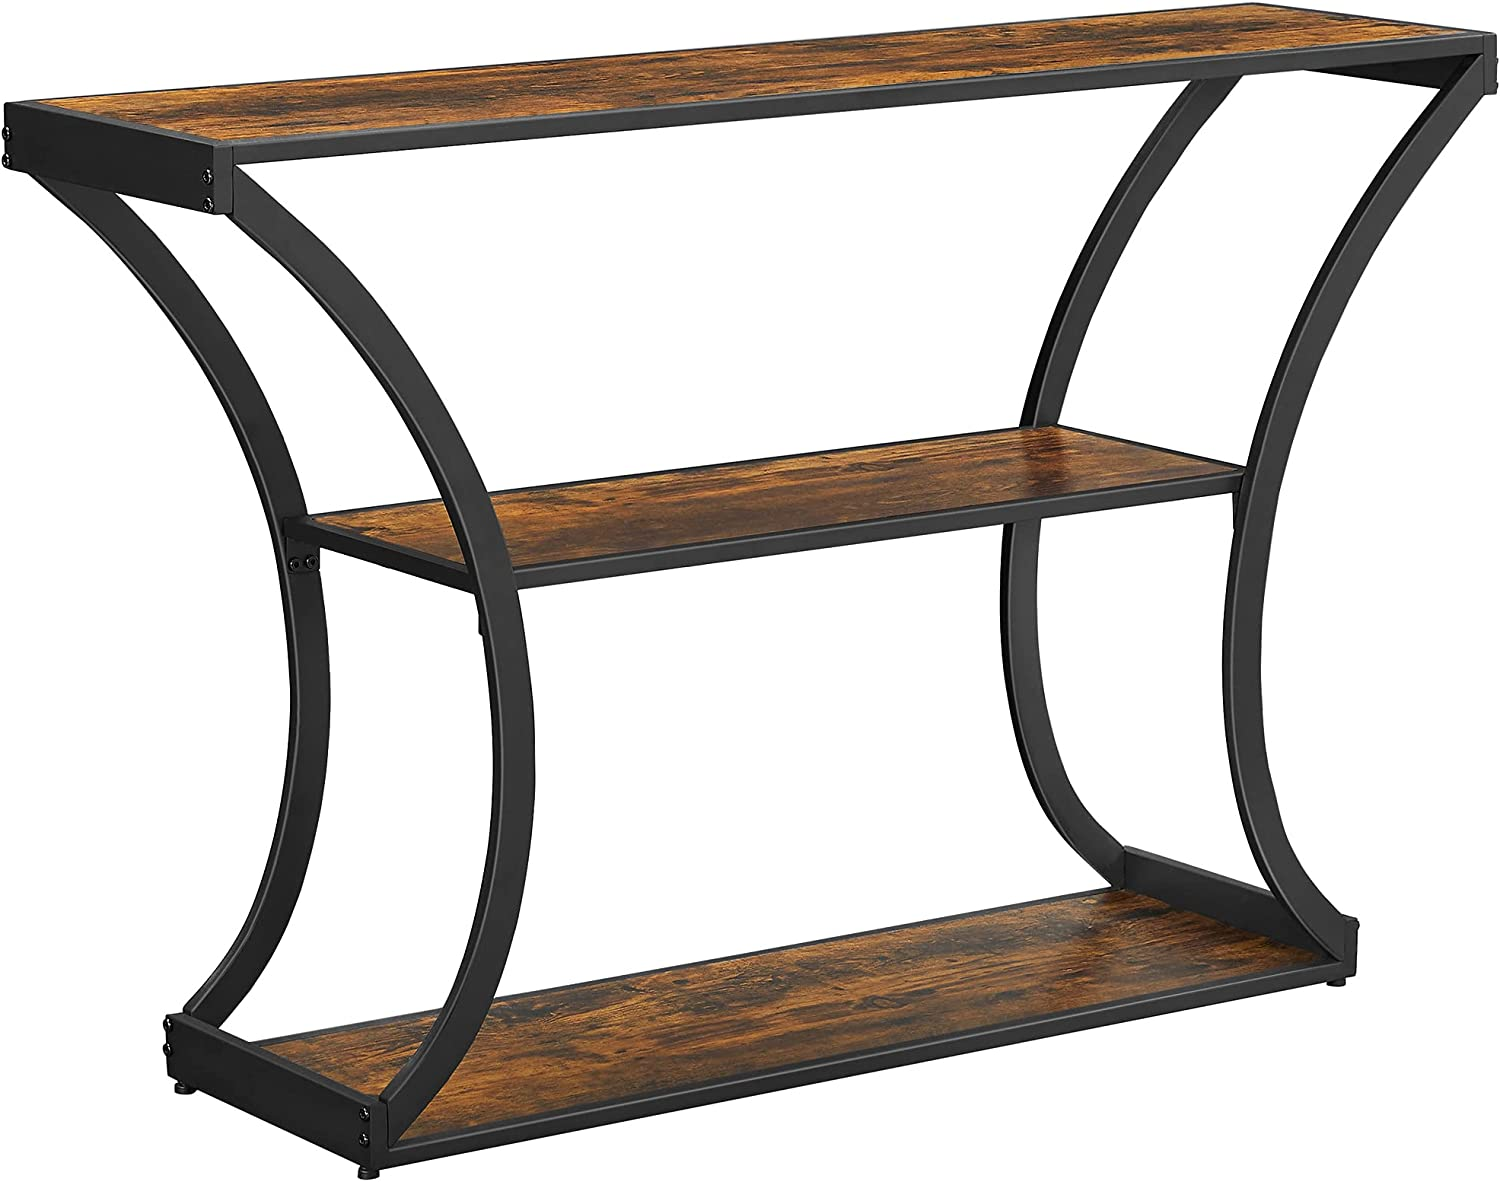 VASAGLE Console Table, Sofa Table, Entryway Table with Curved Frames, Long Table Top, 2 Open Shelves, for Hallway Entryway Living Room, Rustic Brown and Black ULNT089B01